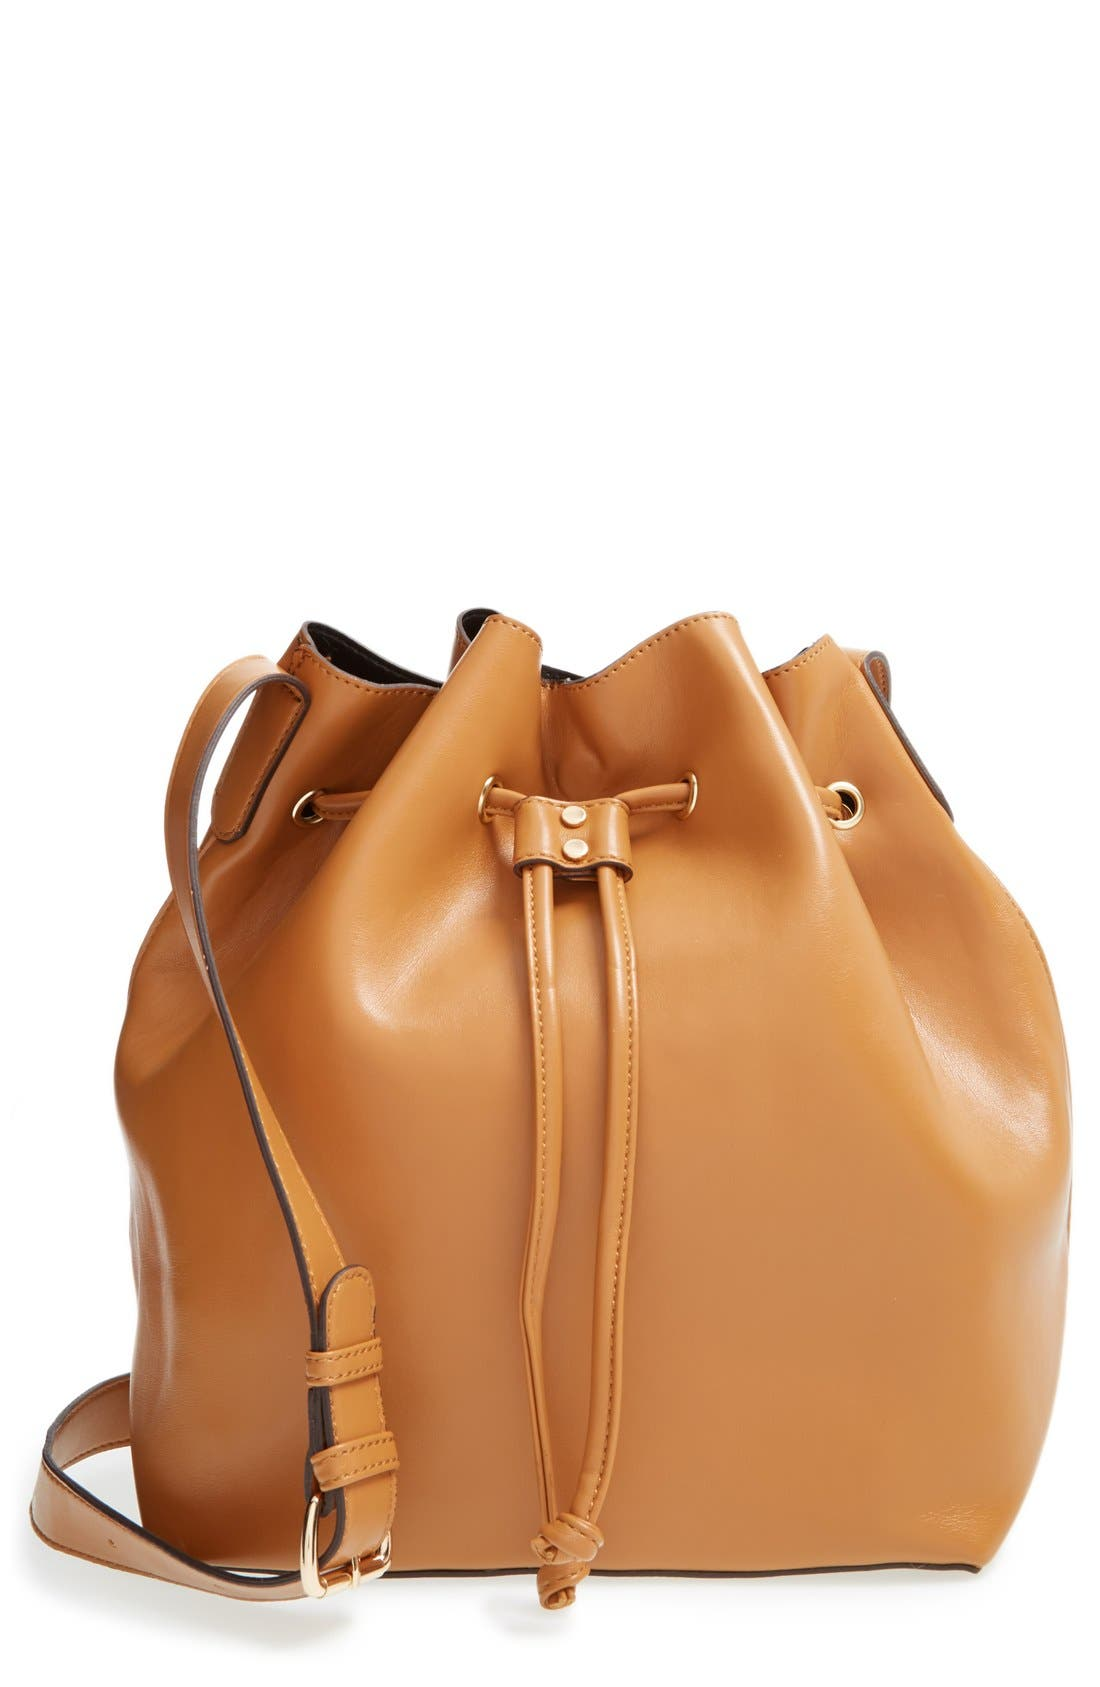 SOLE SOCIETY, 'Nevin' Faux Leather Drawstring Bucket Bag, Main thumbnail 1, color, 200